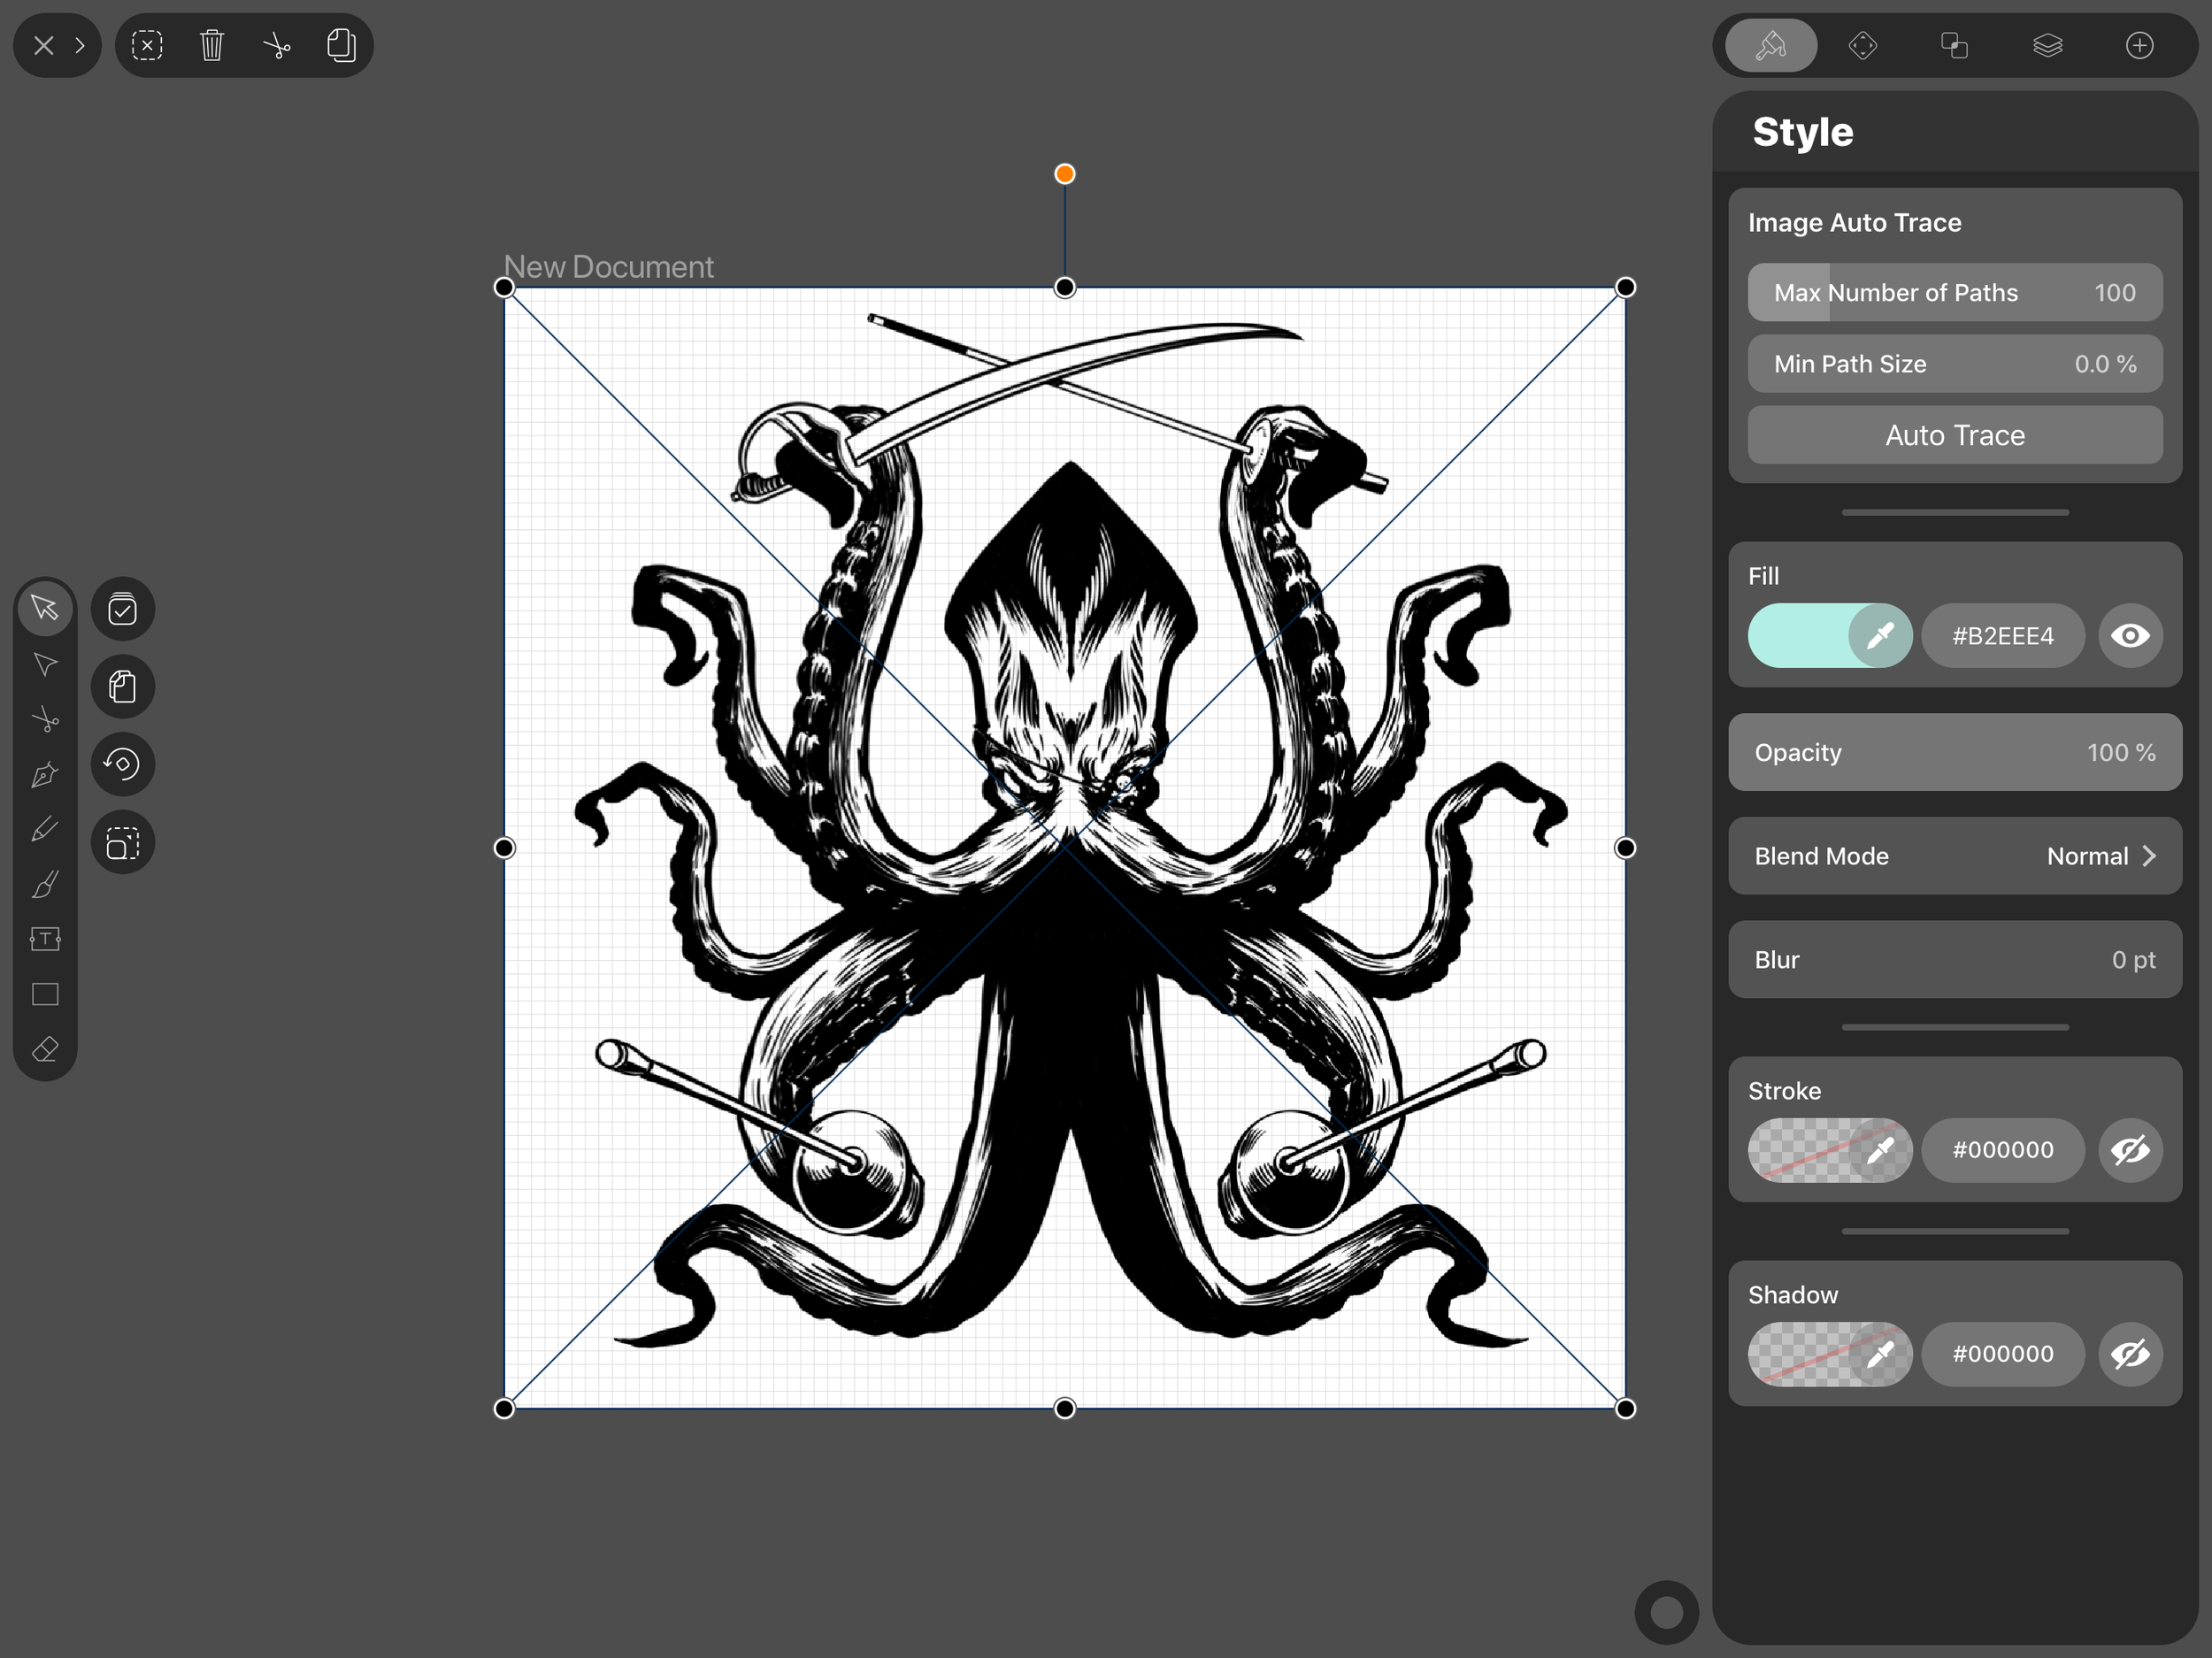 The original image of the pirate kraken for our fencing club's mascot done on Procreate. I imported this file to Vectornator to test out the Auto Trace which is seen on the above right.